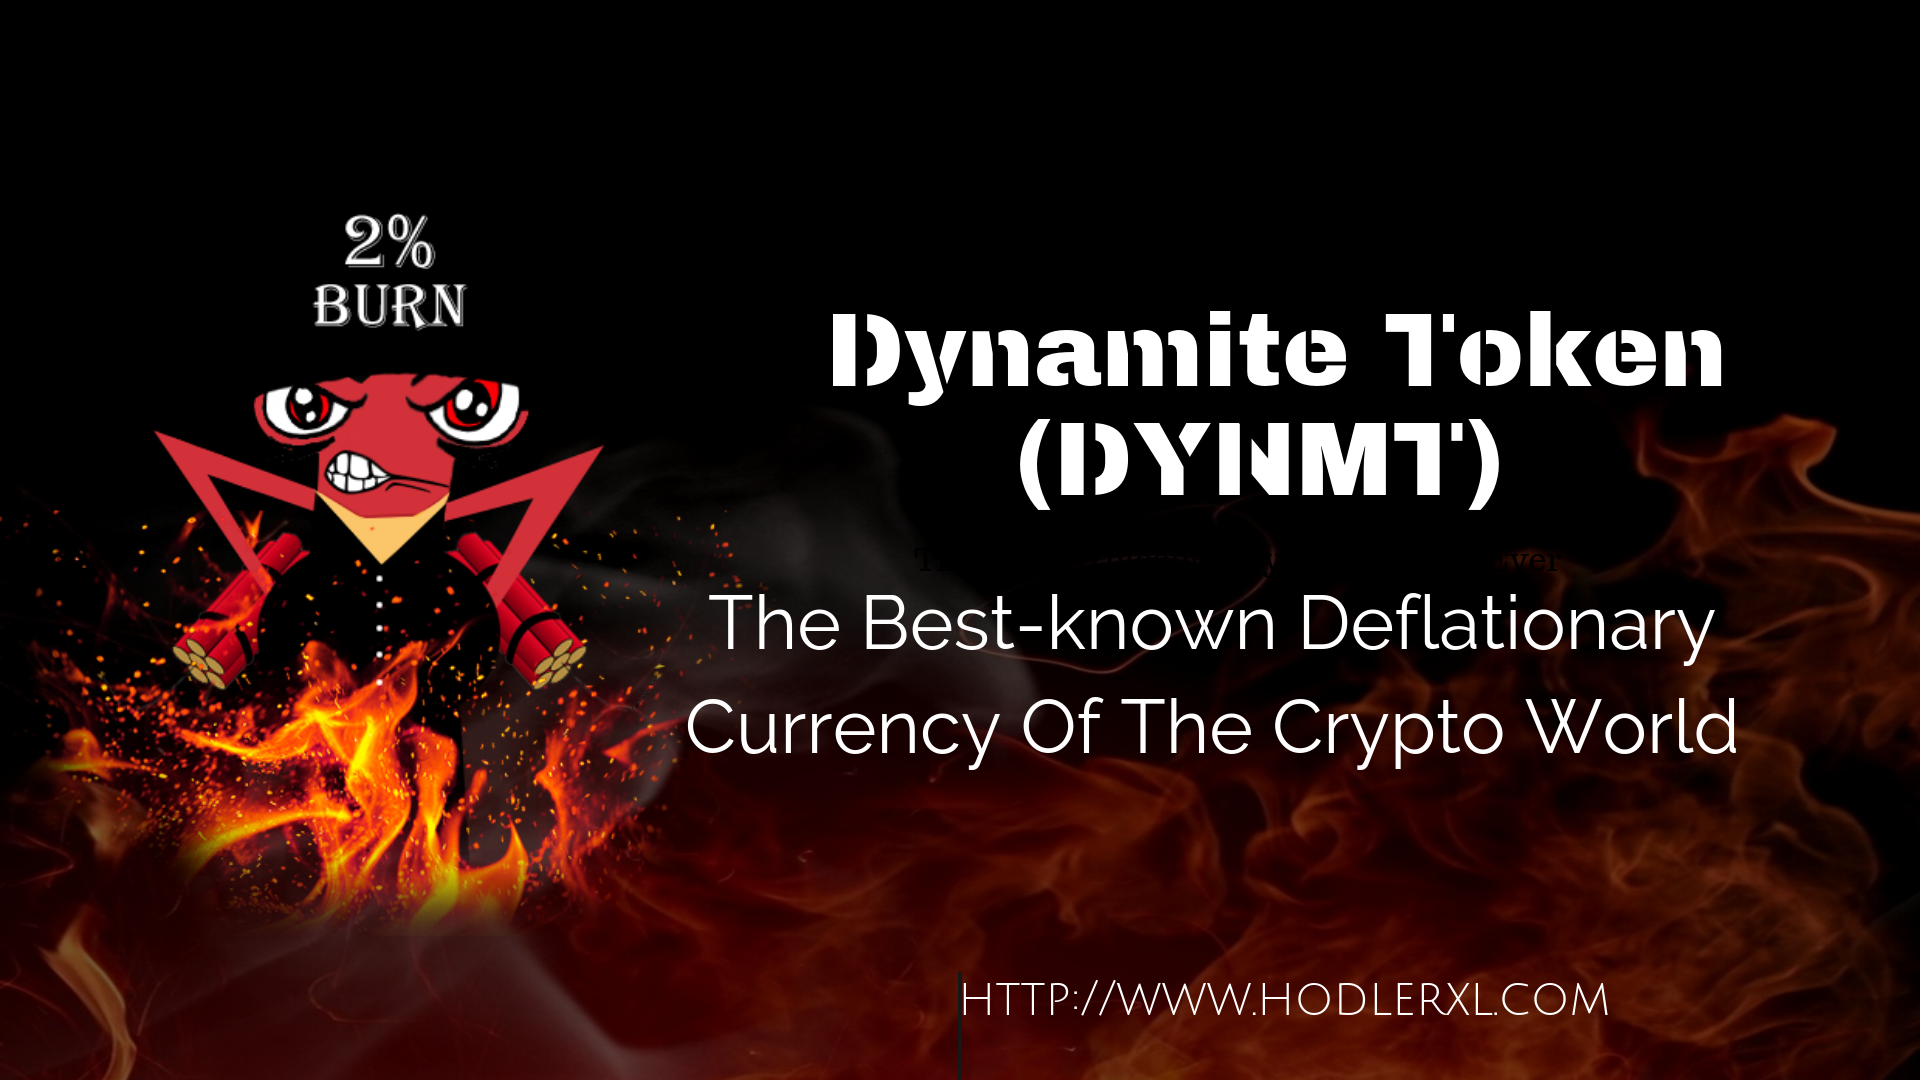 Dynamite Token (DYNMT) As The Best-known Deflationary Currency Of The Crypto World